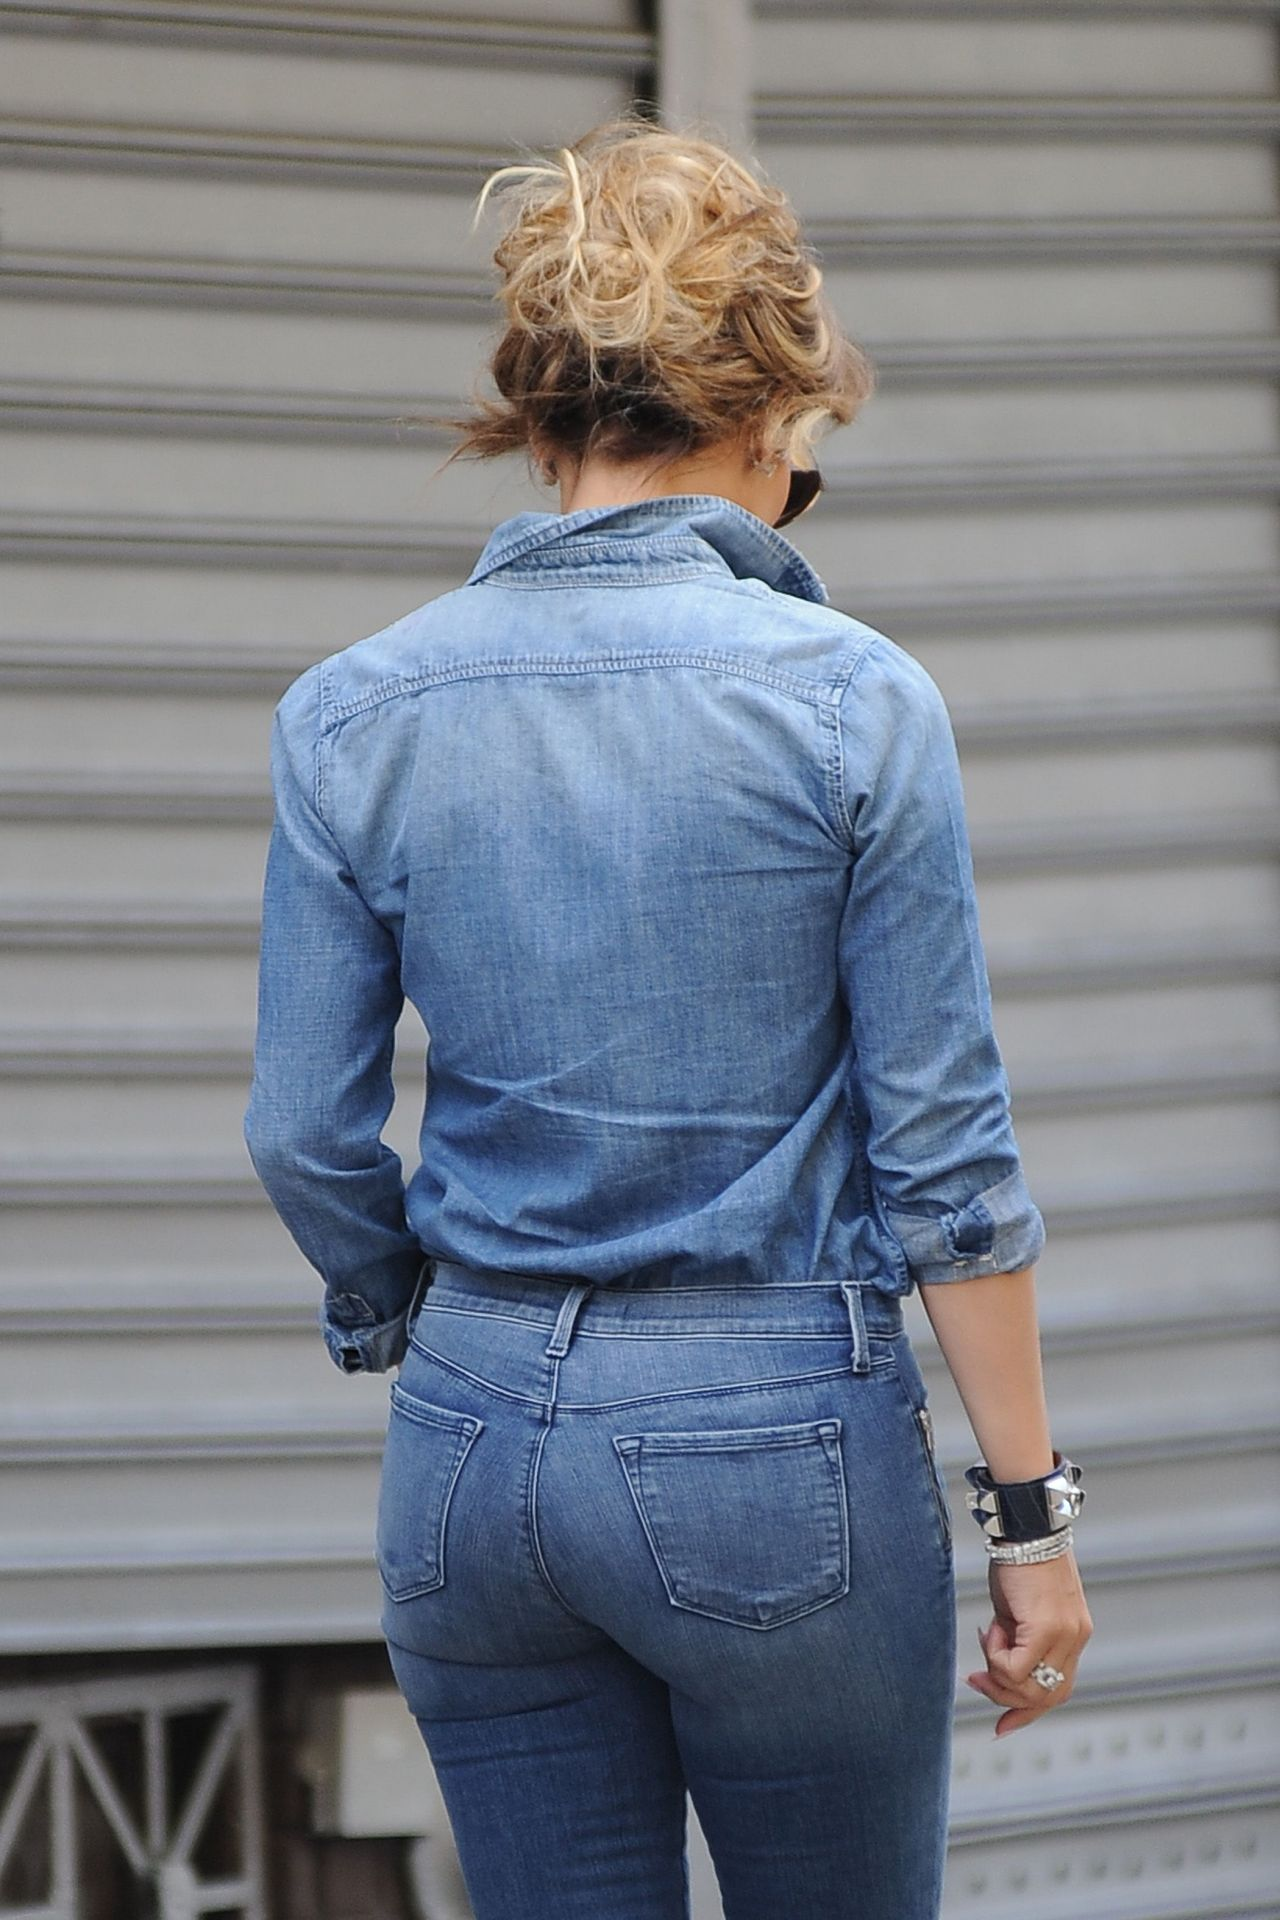 Ass in jeans videos